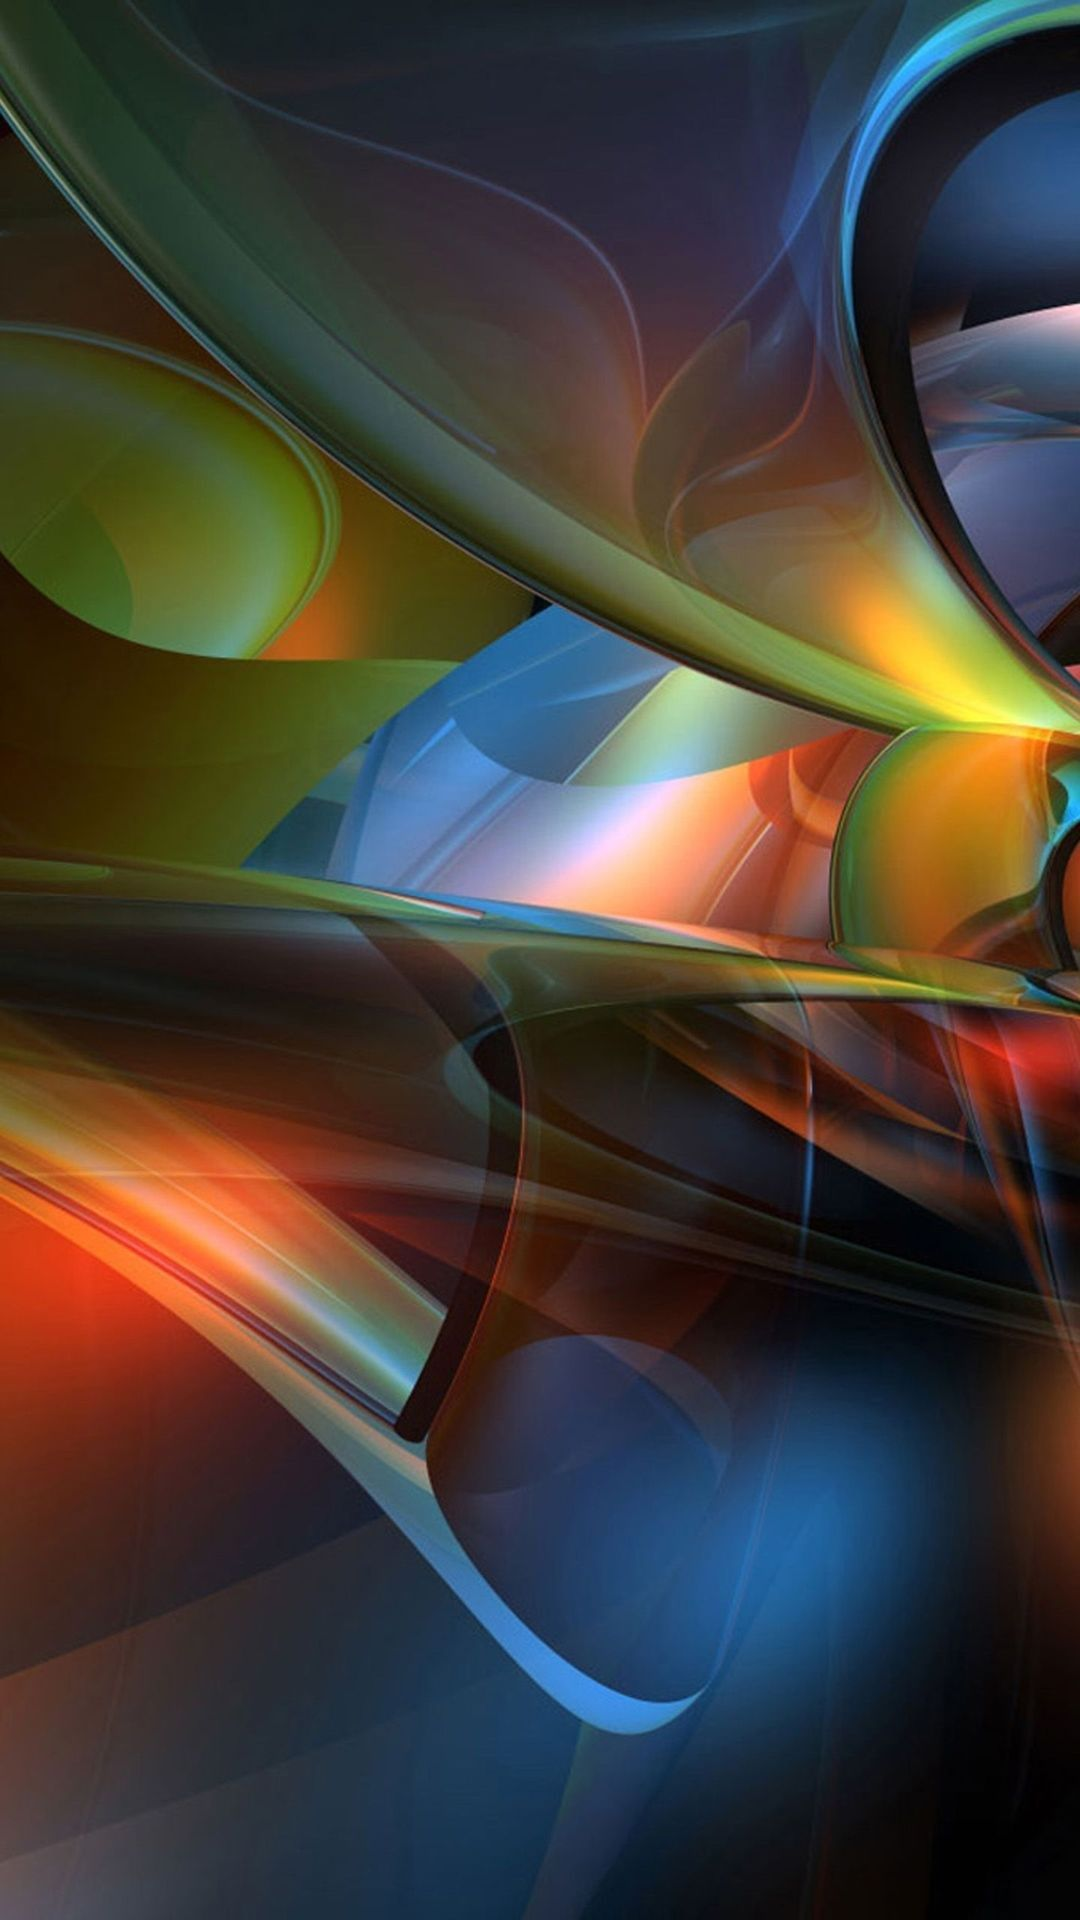 3d abstract mobile phone wallpaper 1080x1920 Black phone